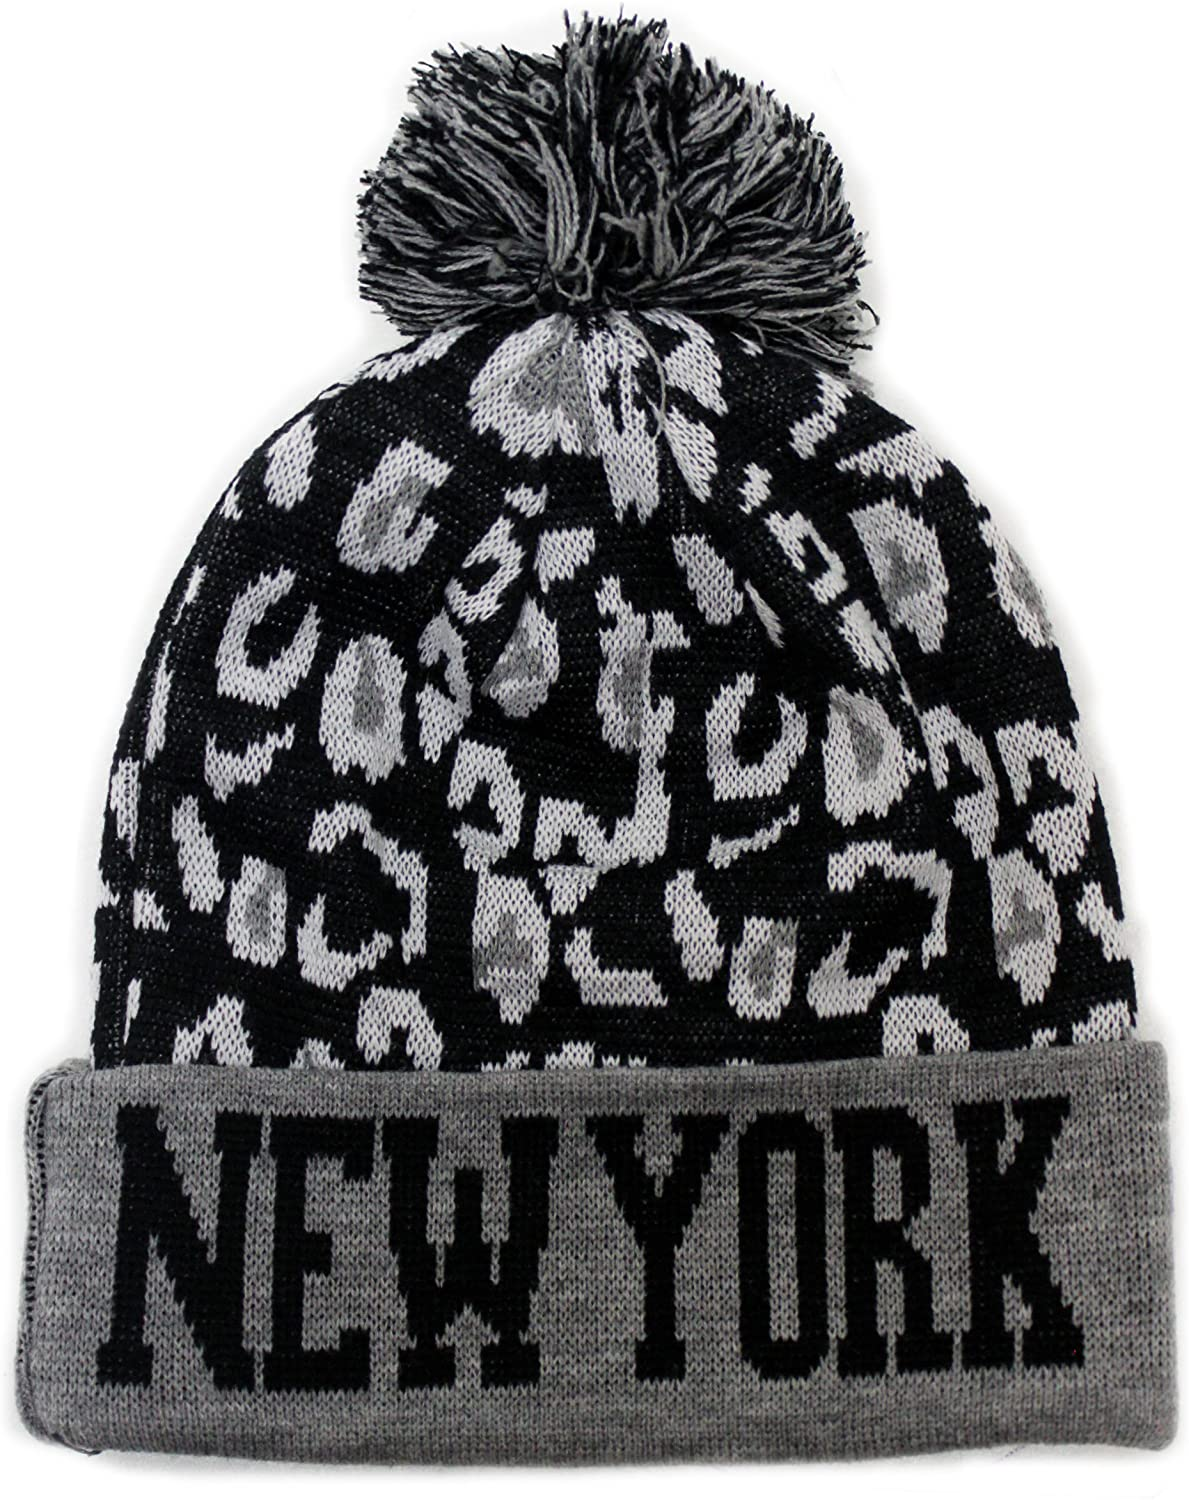 City Hunter Sk950 Leopard Pom Beanie Ski Hat - New York (Grey)